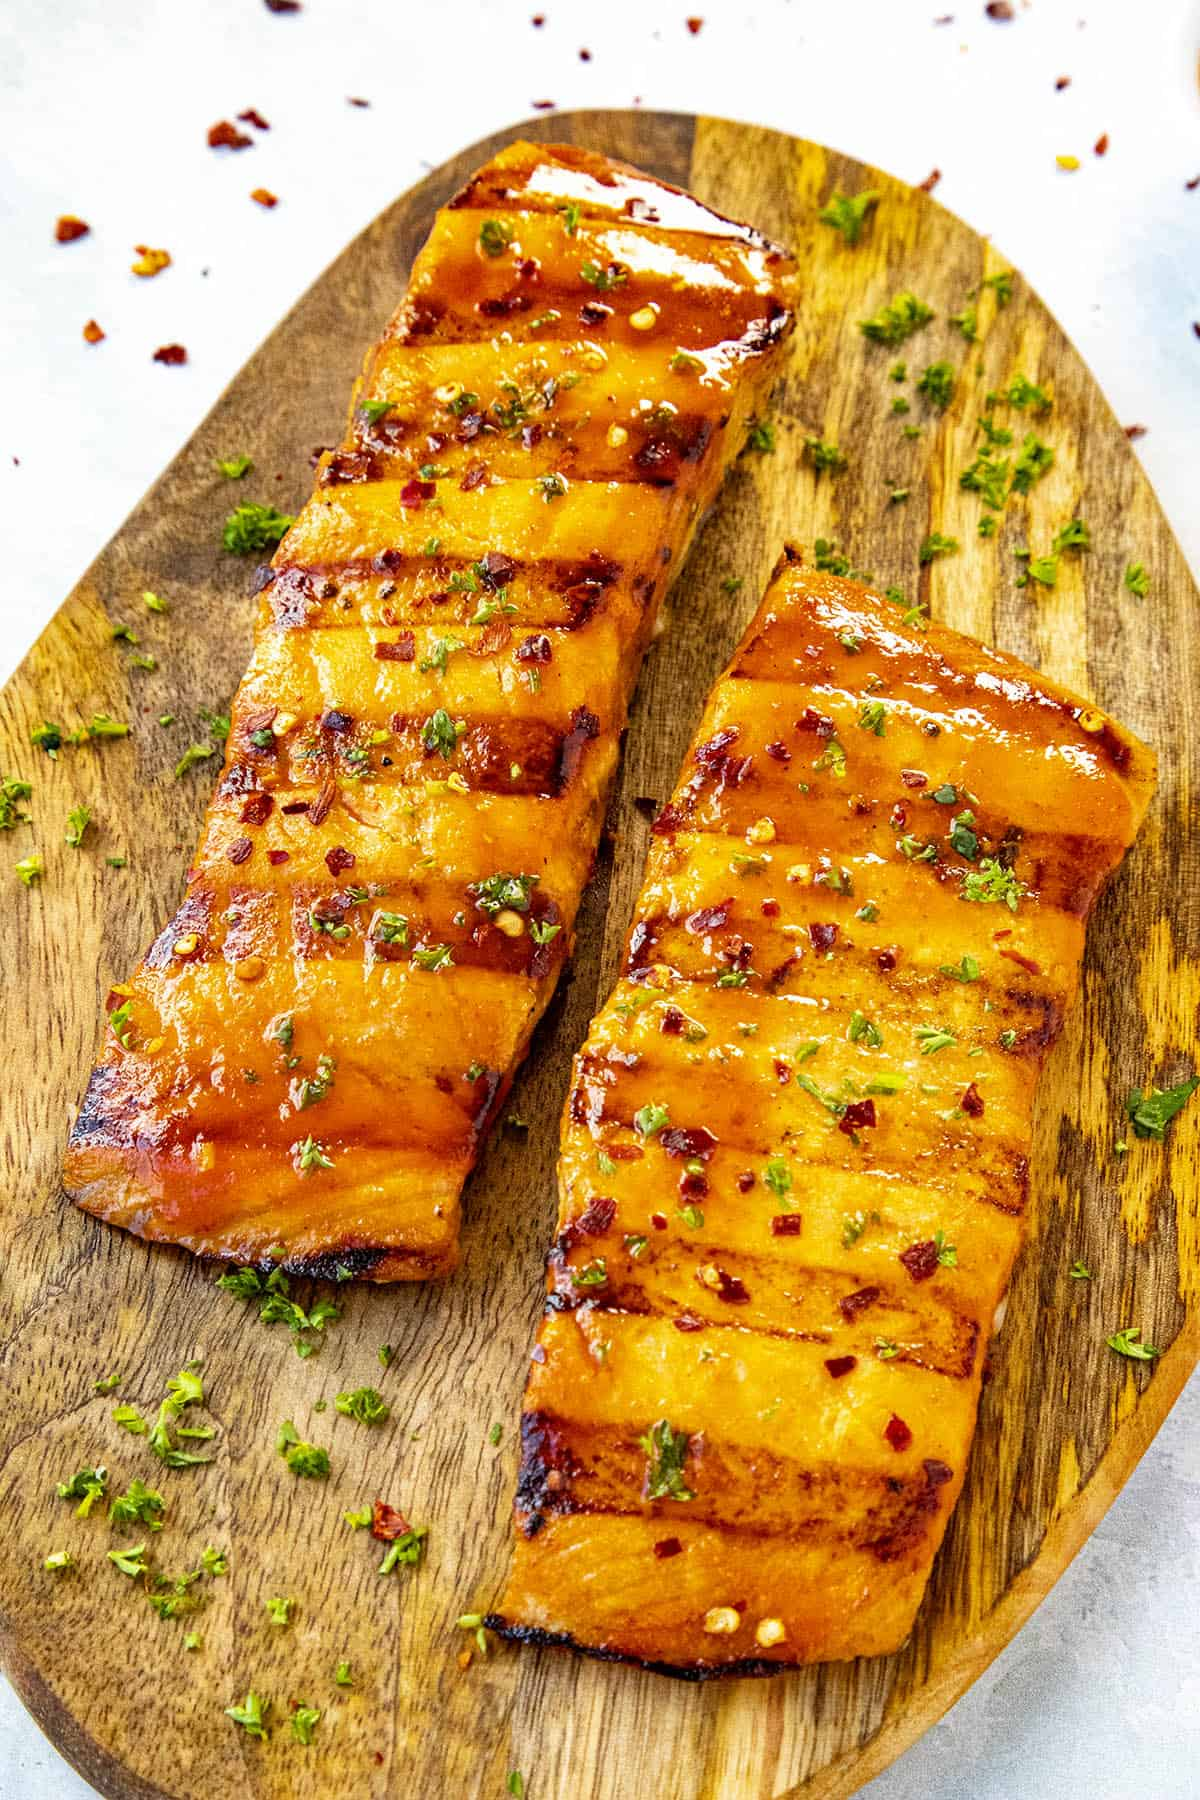 2 fillets of Grilled Salmon with Honey Sriracha Sauce